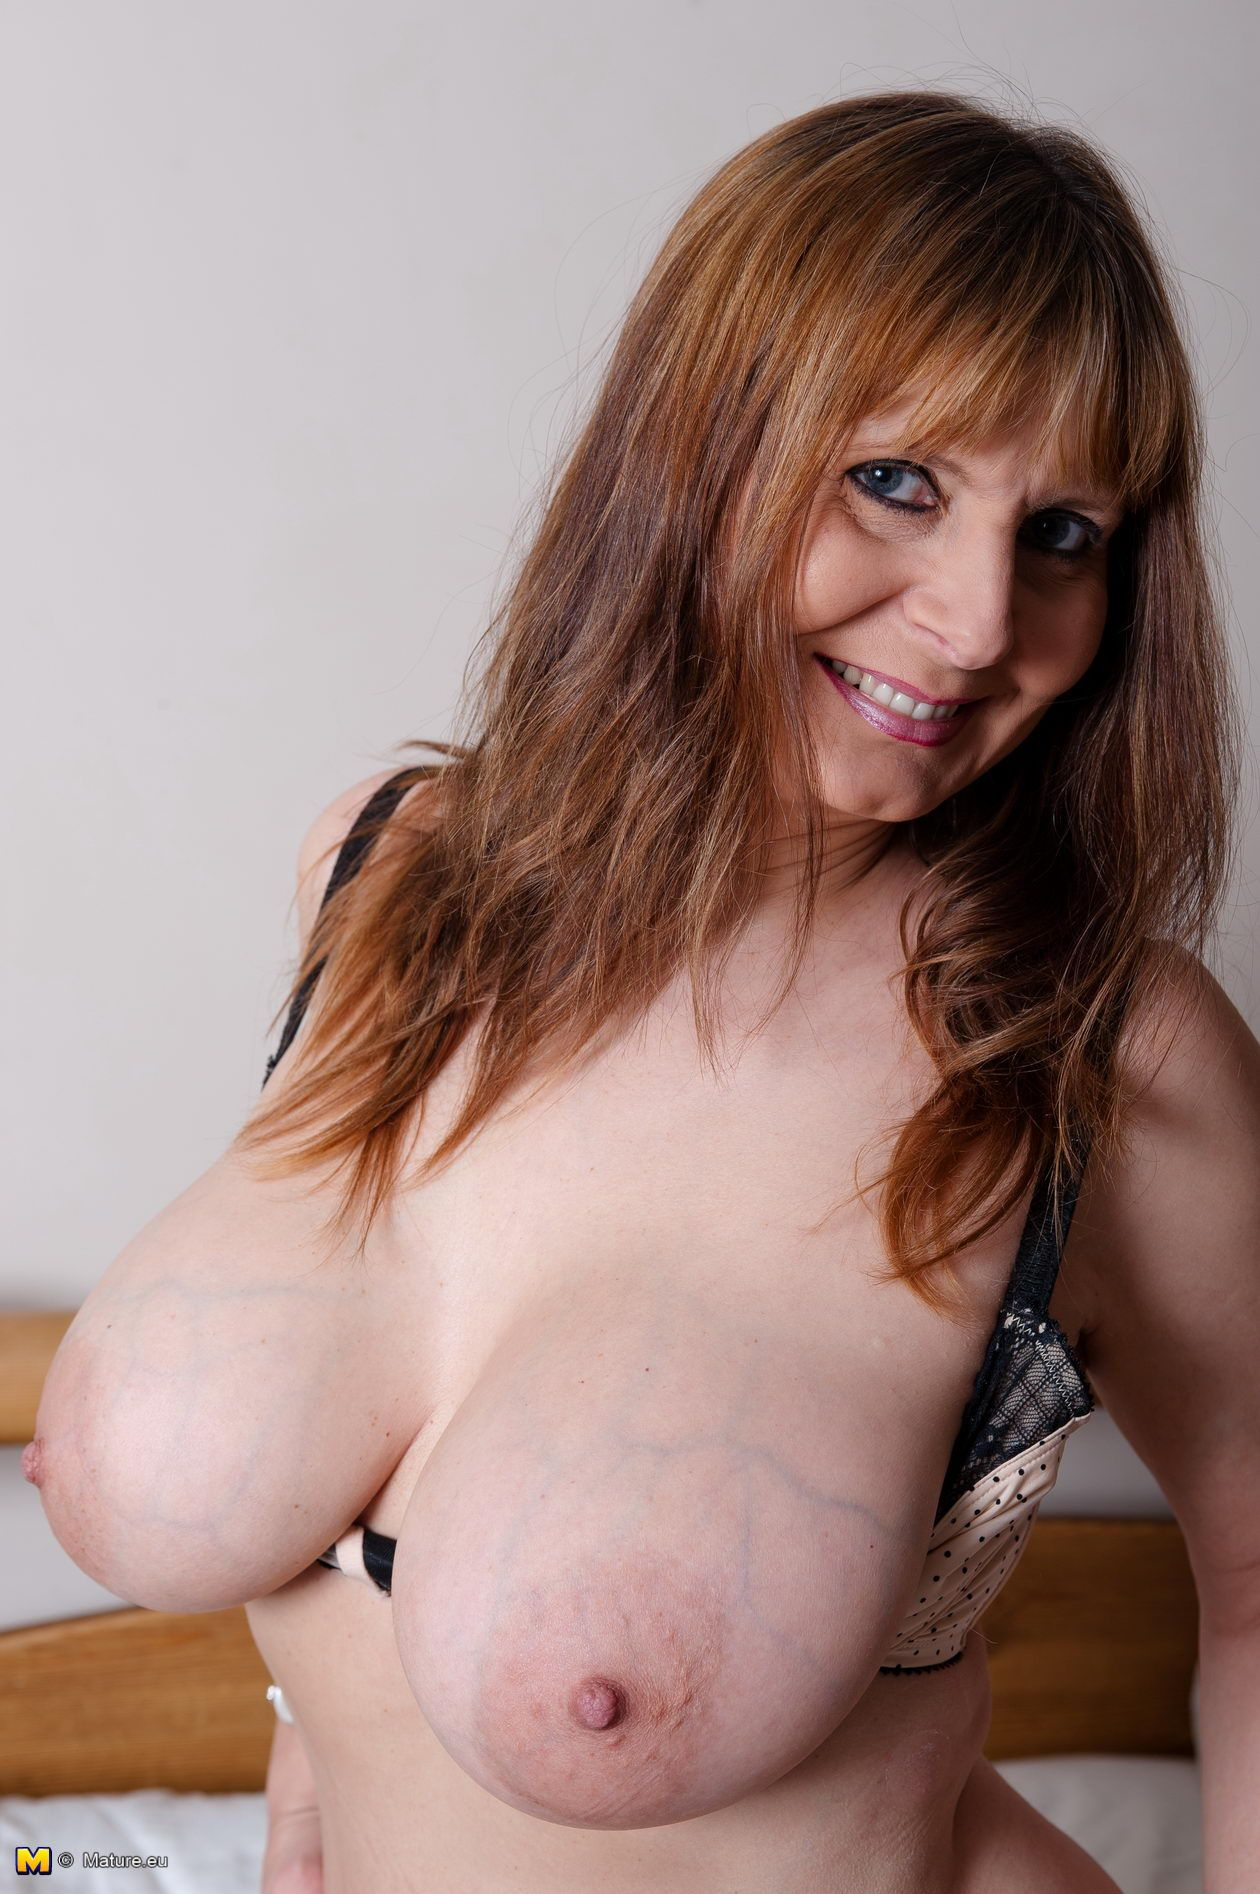 The mature massive round boobs naked